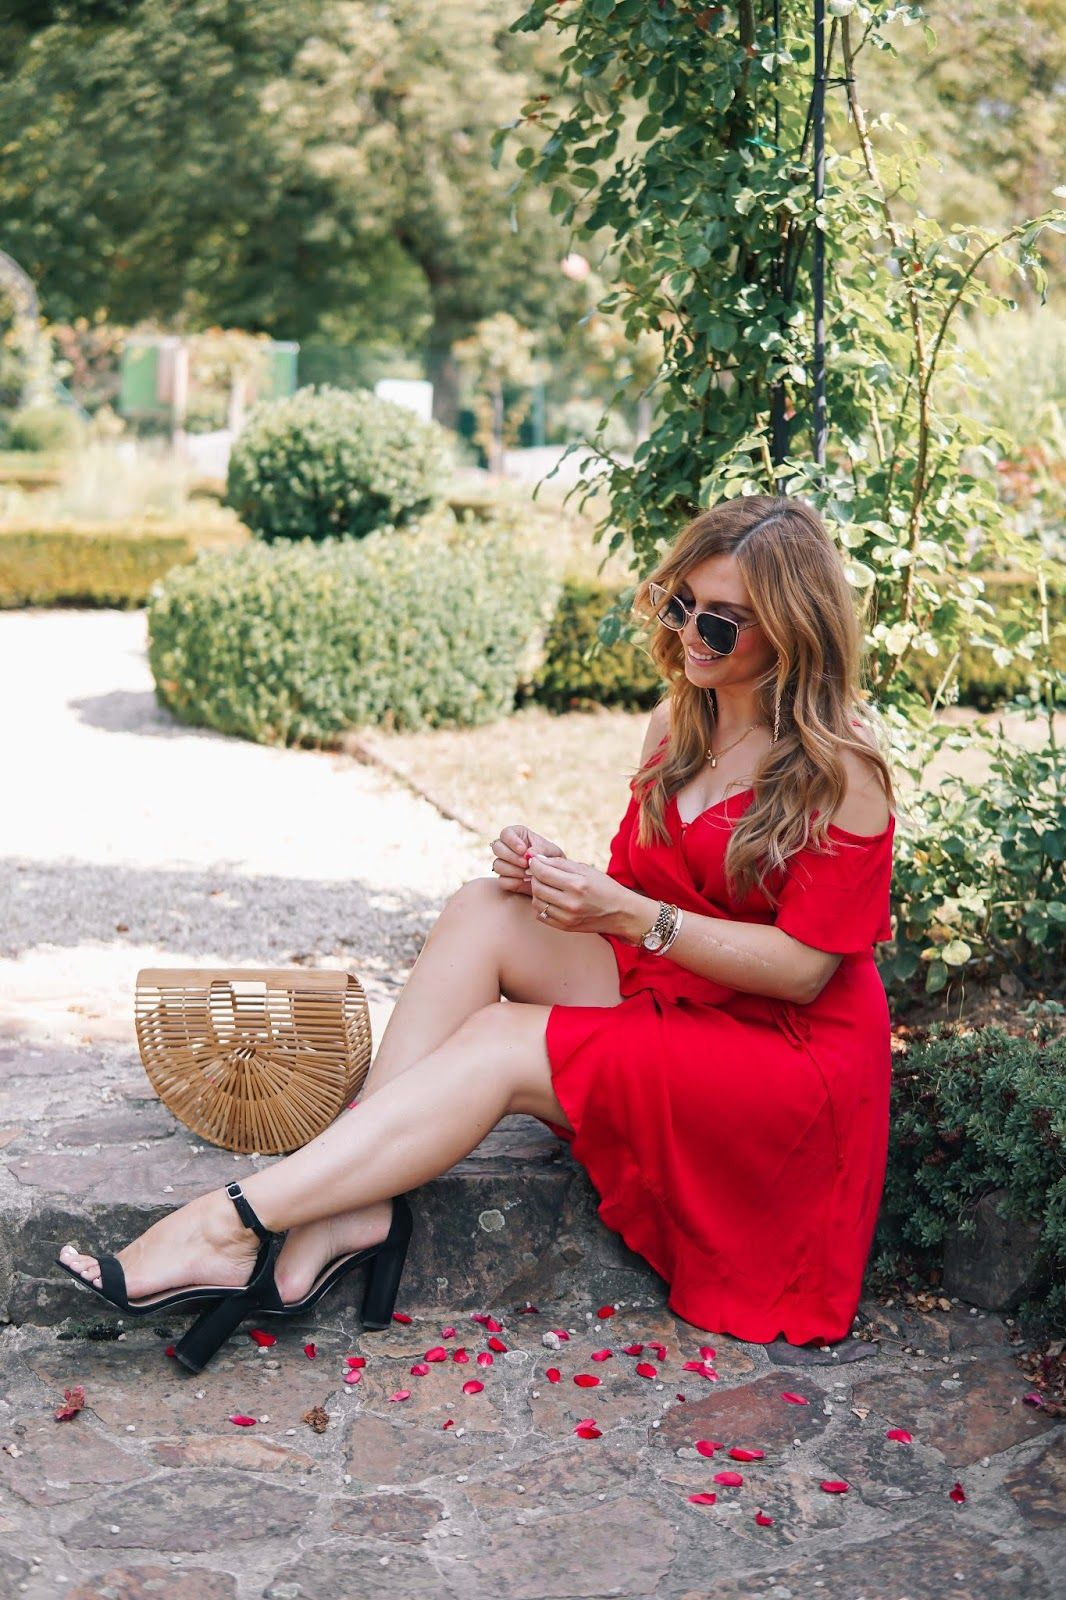 Rotes Sommer Kleid | Fashion, Fashion beauty, Her style